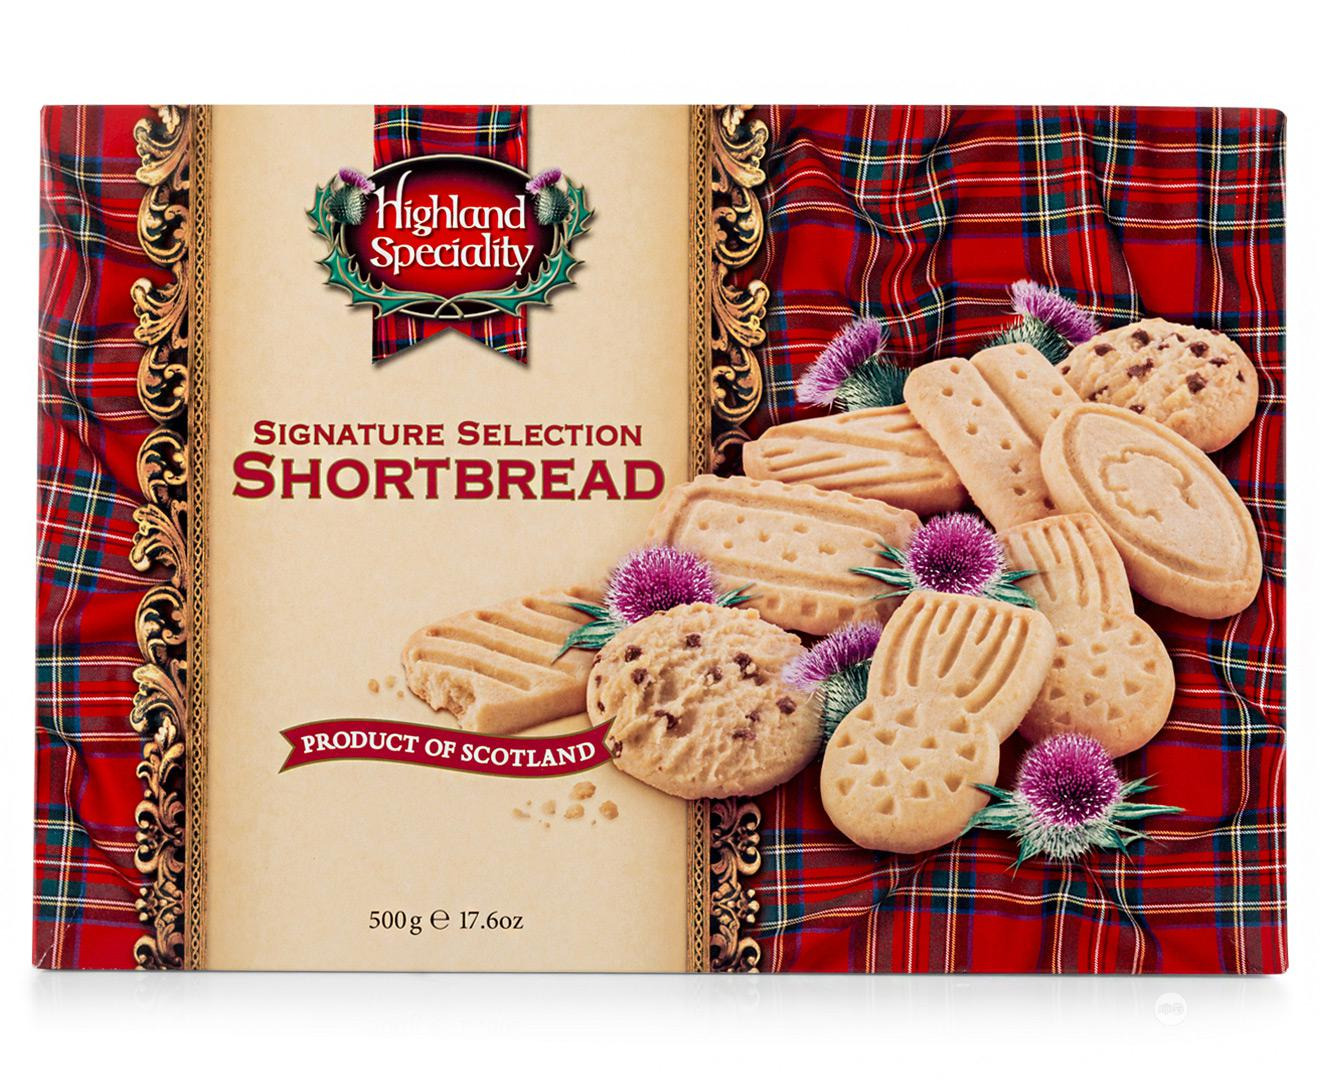 Highland Speciality Shortbread Signature Selection 500g